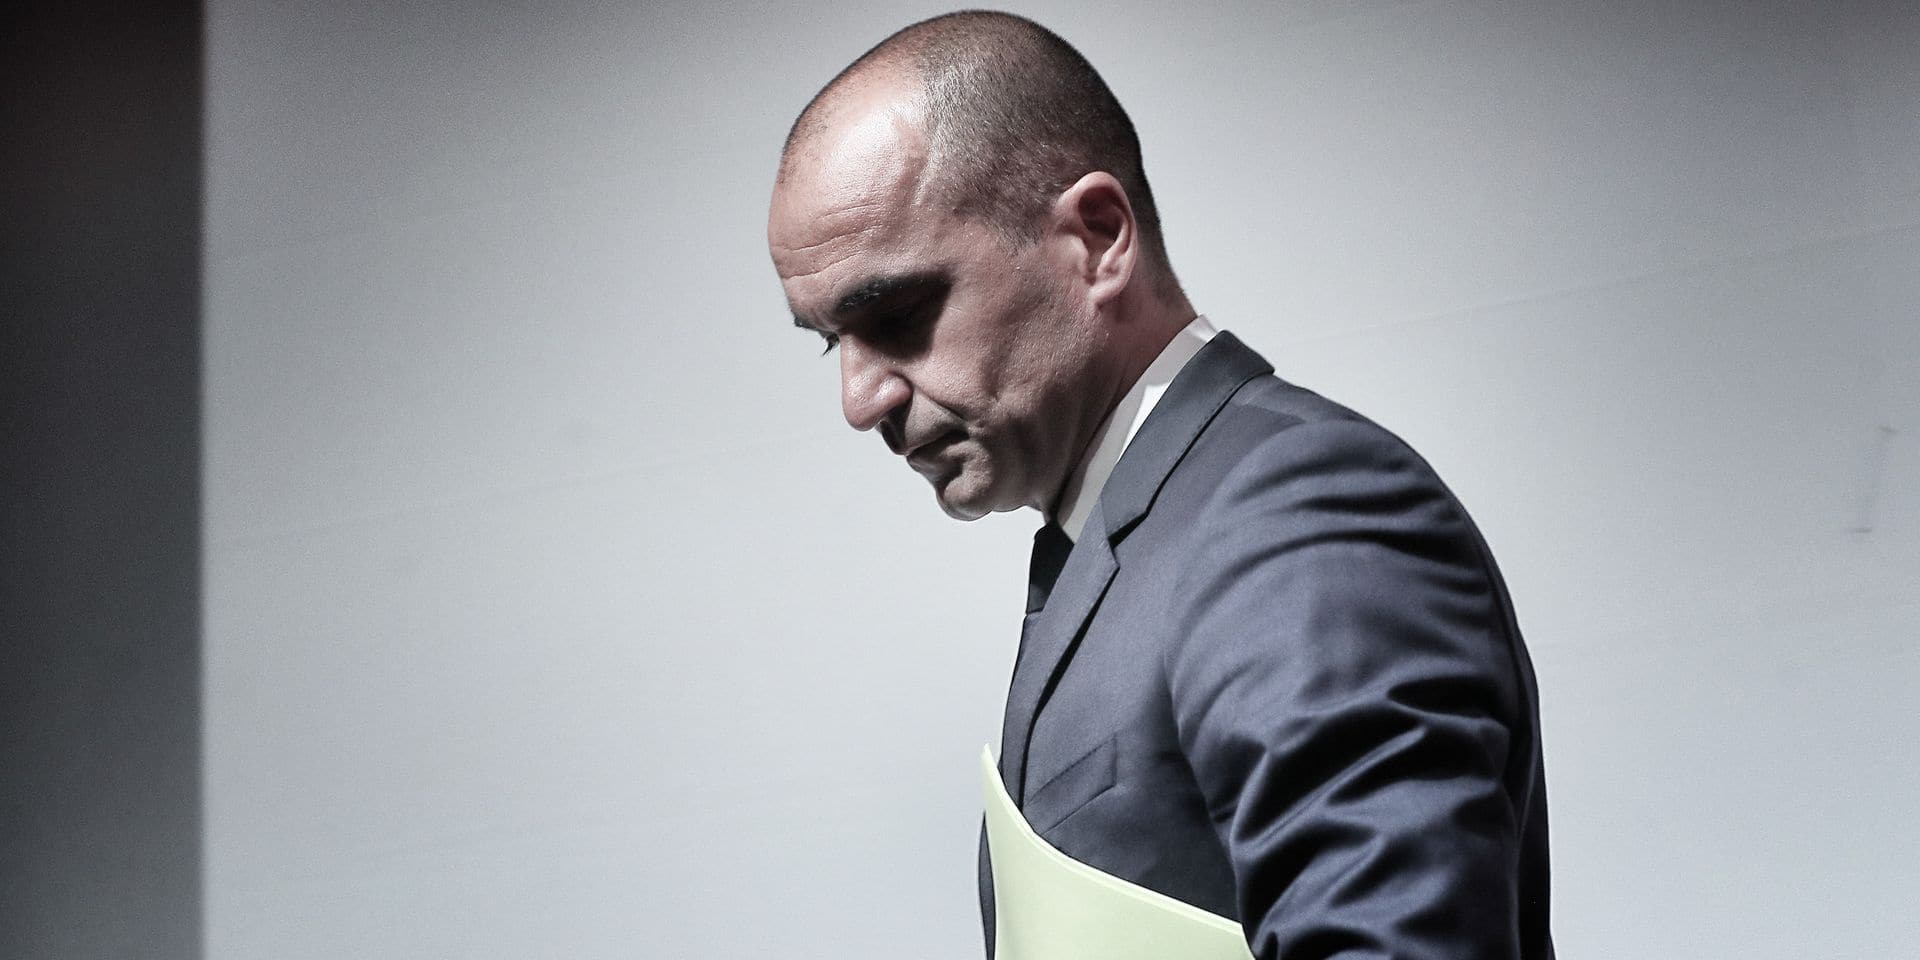 Belgium's head coach Roberto Martinez leaves after a press conference of Belgian national soccer team Red Devils head coach in Tubize, Friday 05 October 2018. The team is preparing for the Uefa Nations League match against Switzerland on 12 October and a friendly game against Netherlands on 16 October. BELGA PHOTO BRUNO FAHY